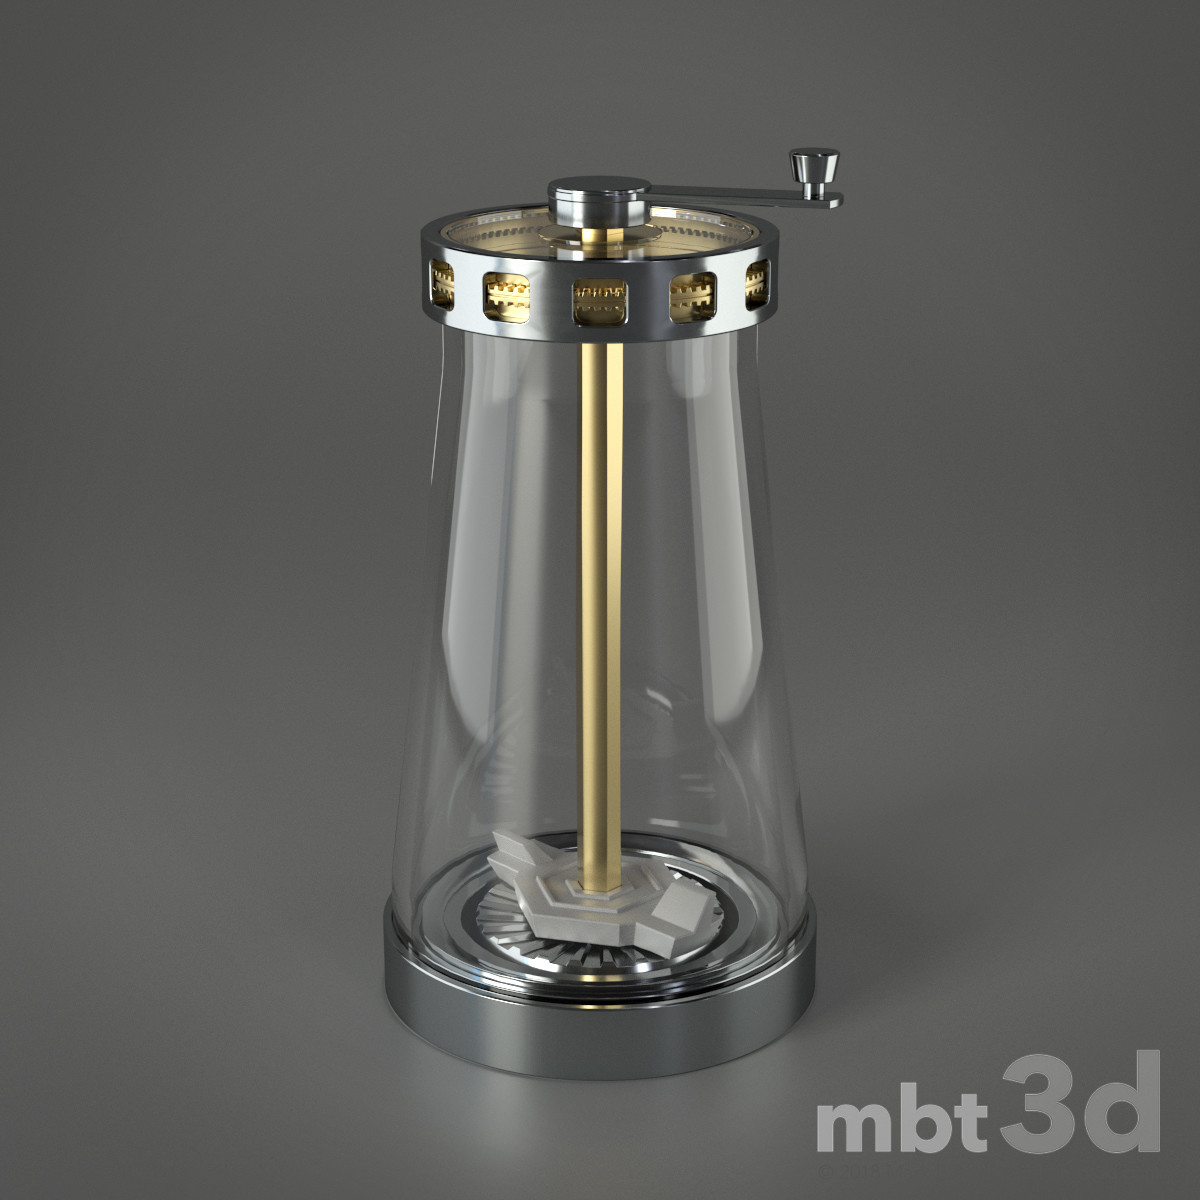 Box 28: A coffee pepper grinder concept